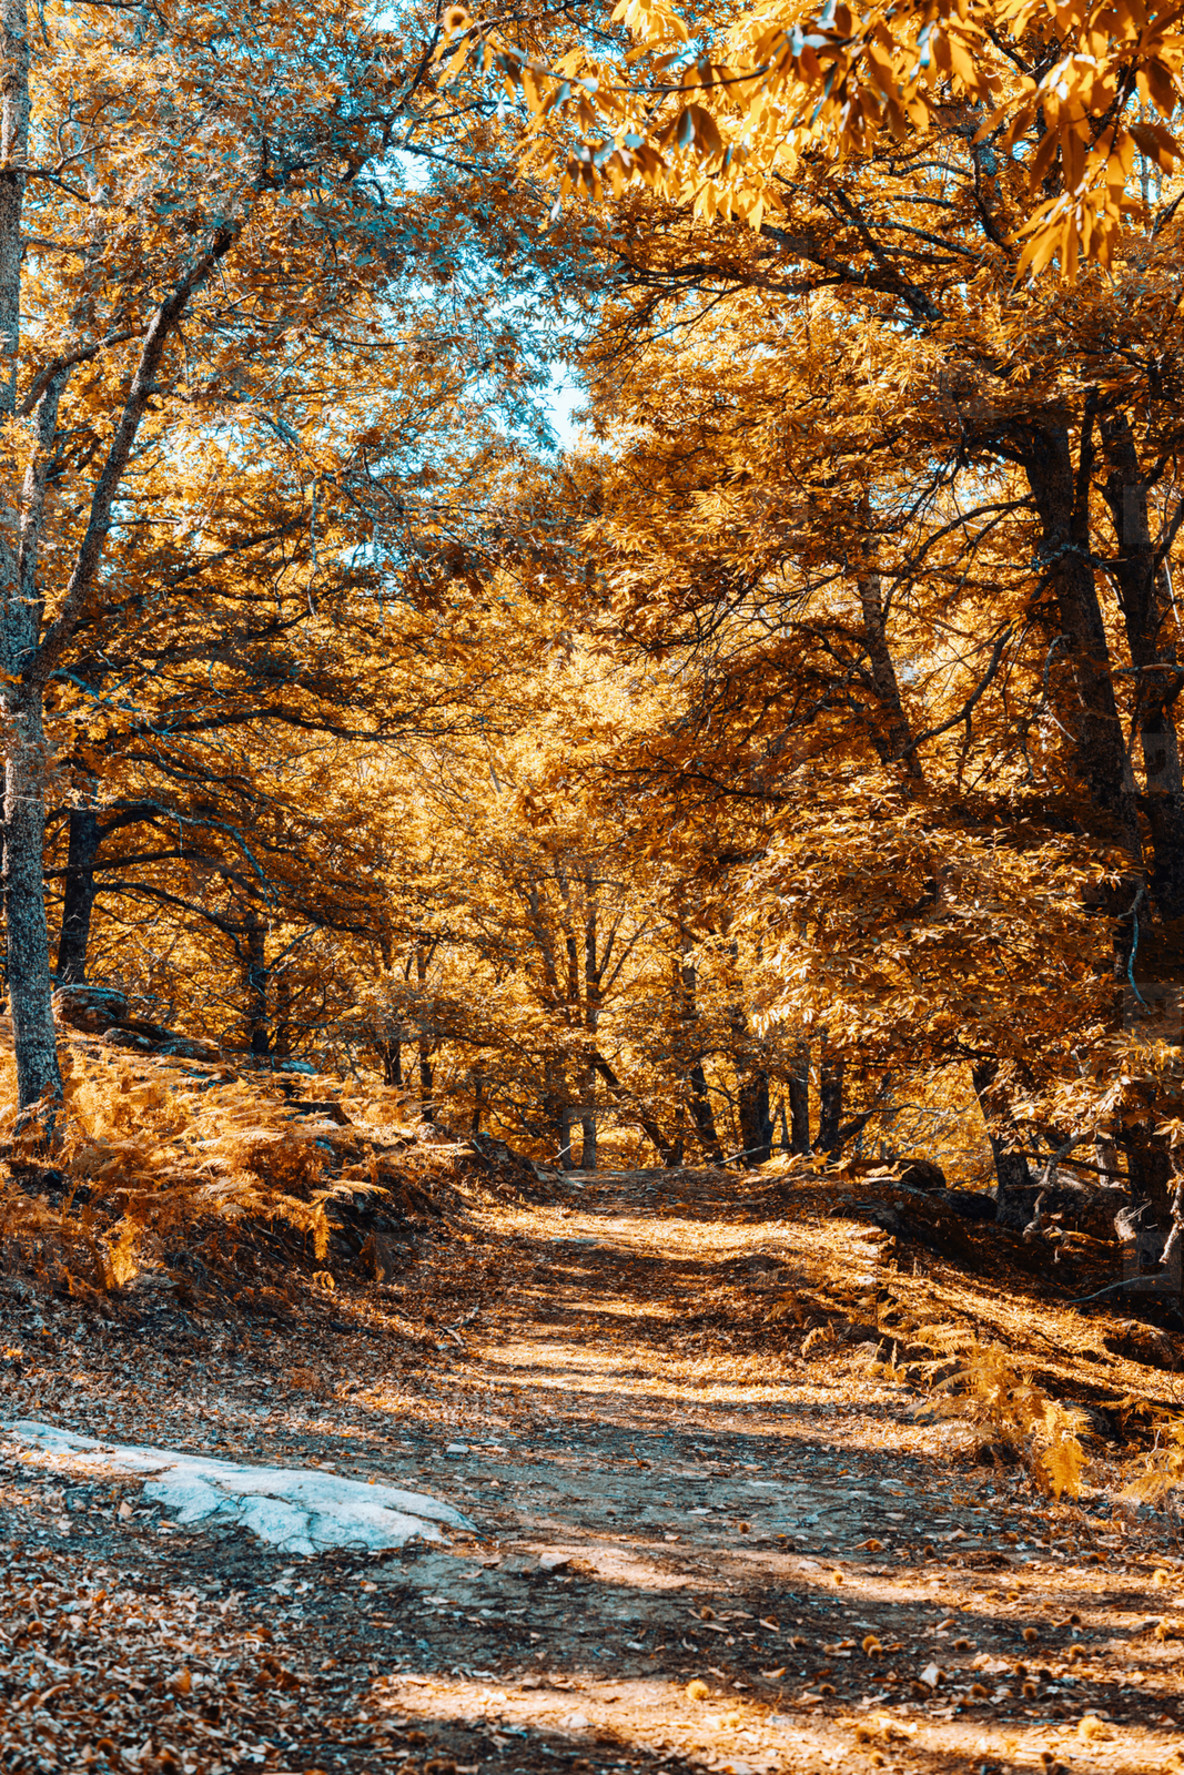 Path in autumn chestnut forest in Spain with warm colors